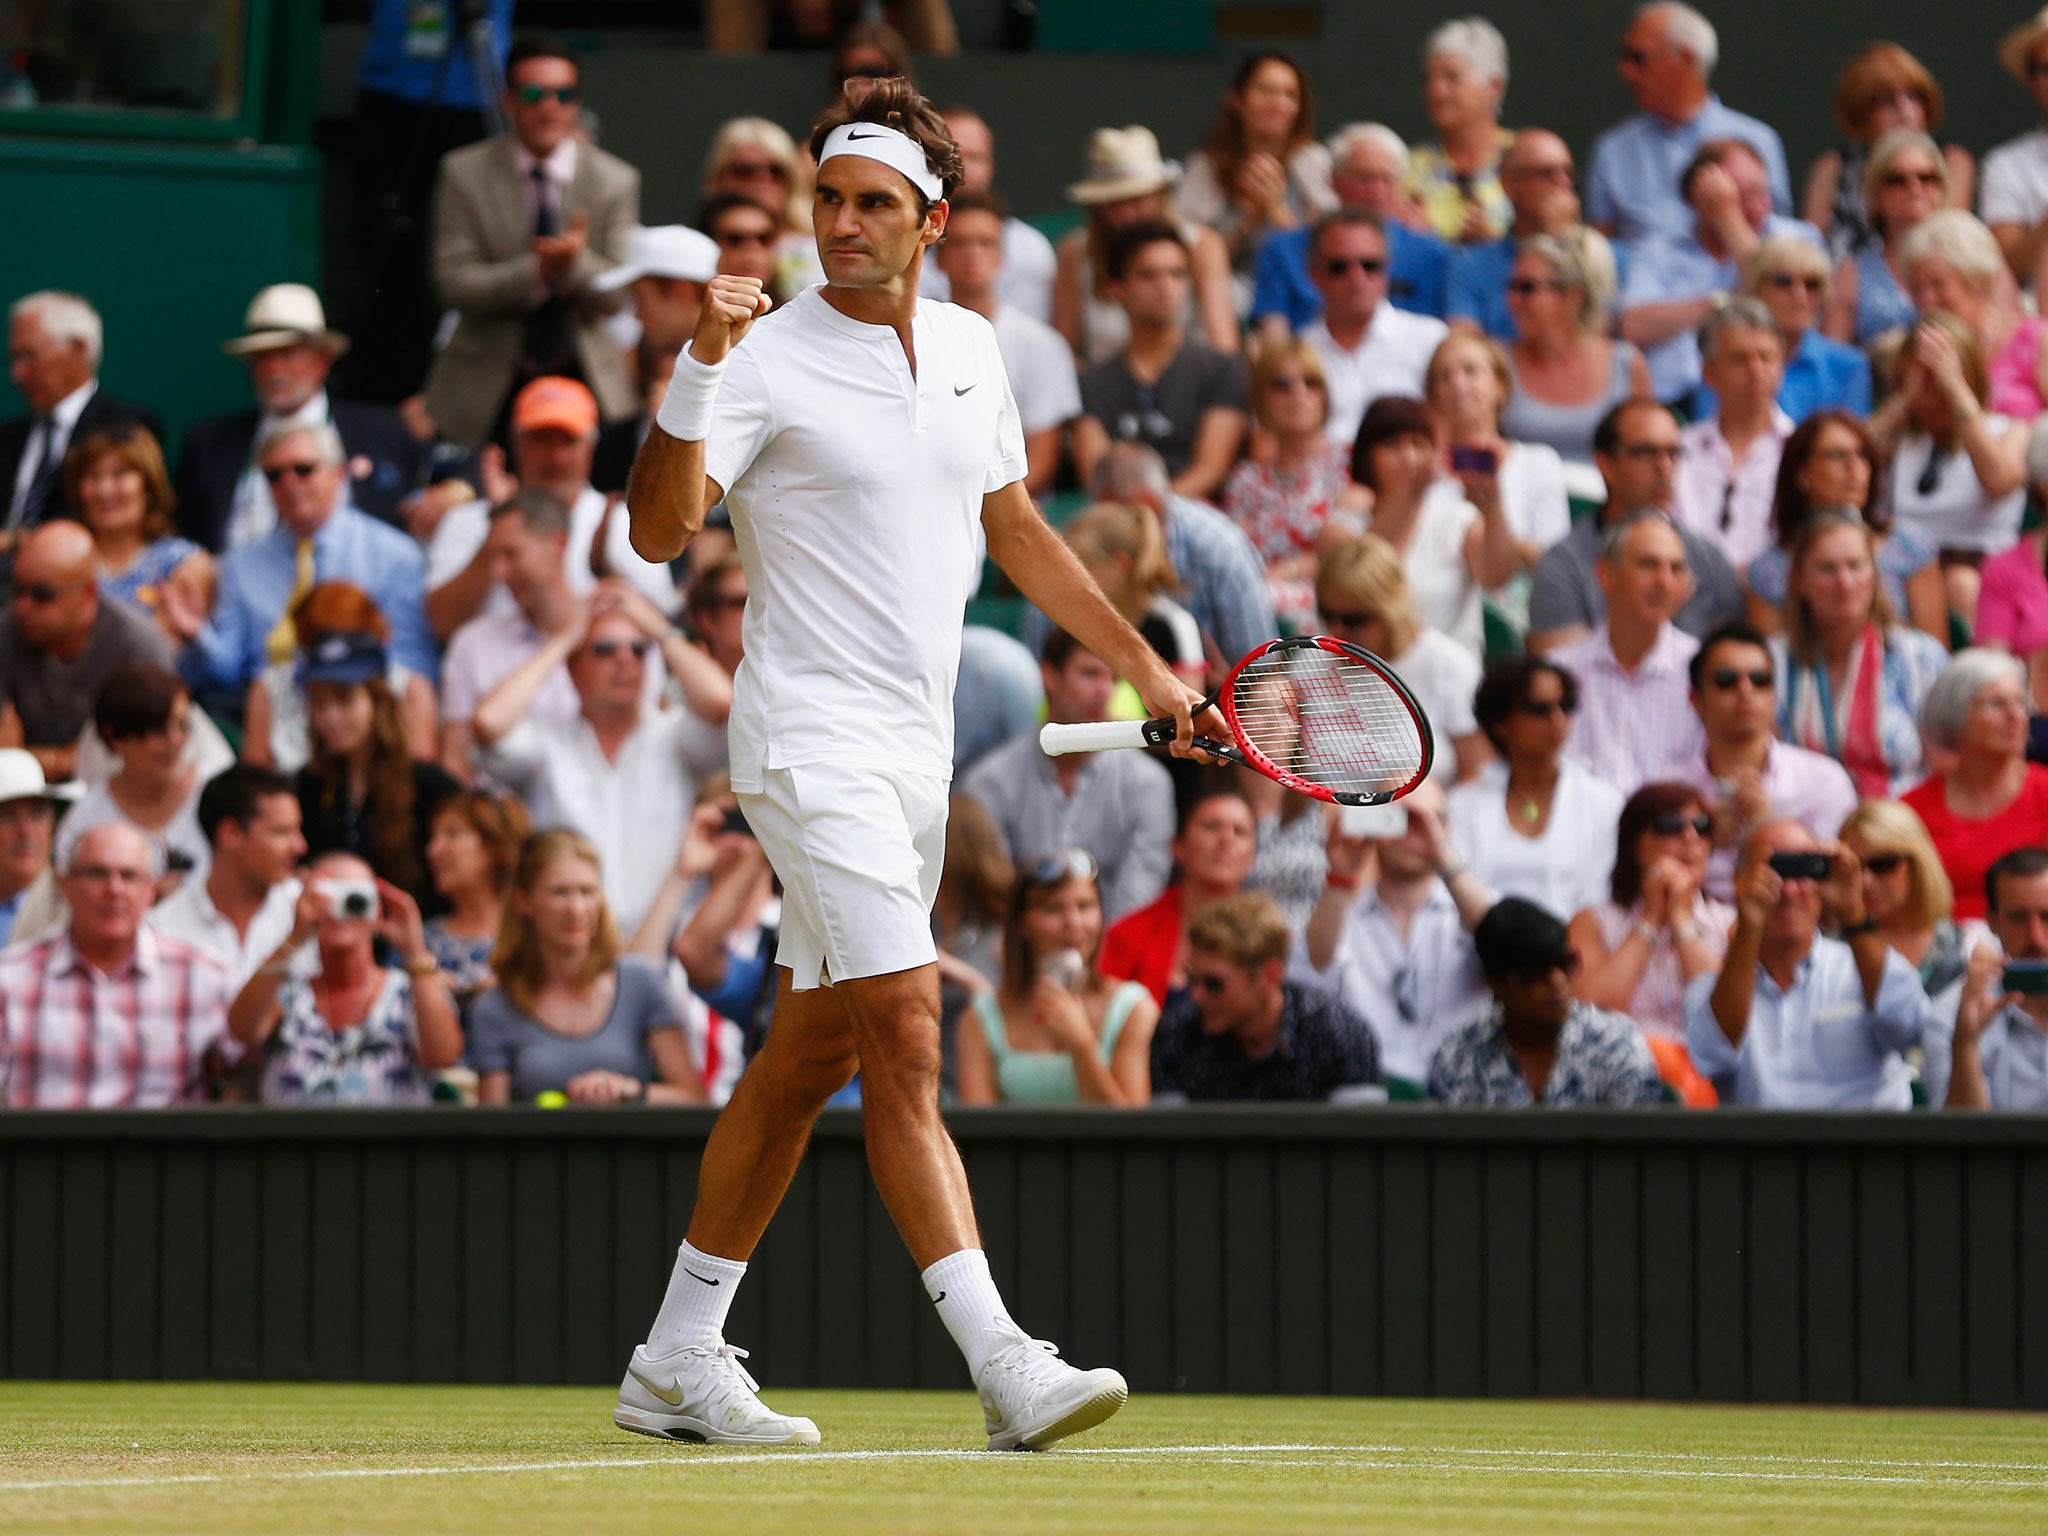 Wimbledon 2015: 'Roger Federer On Friday Was The Best